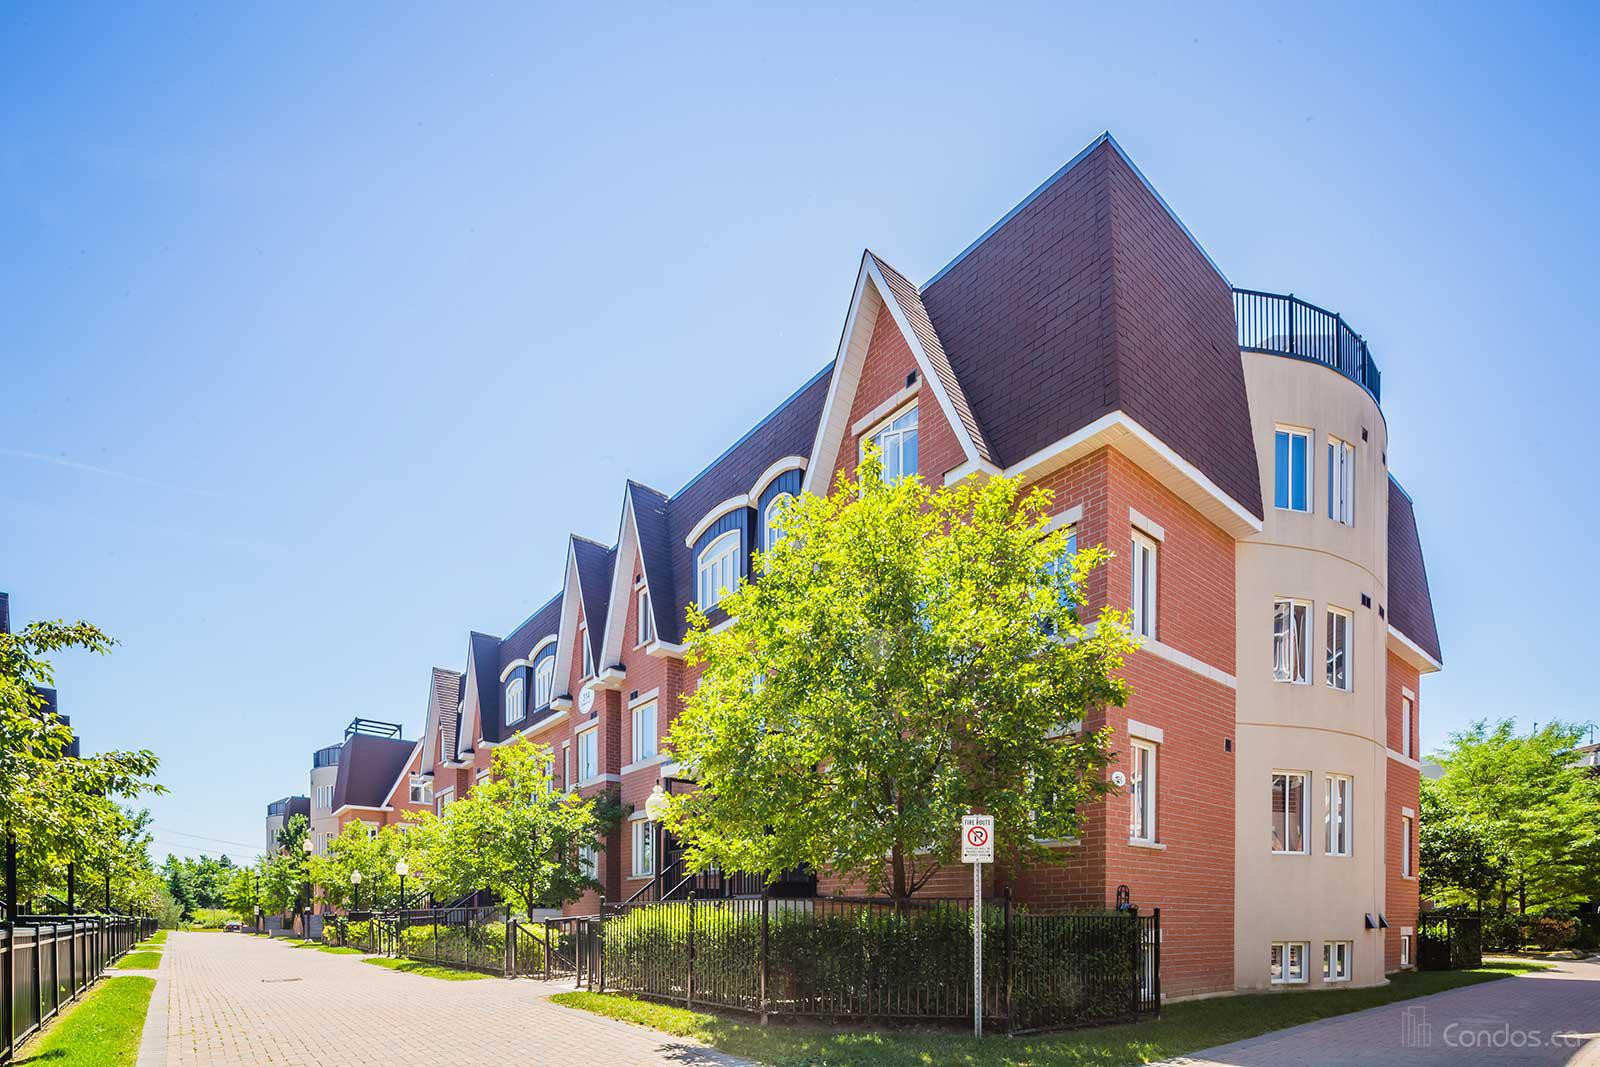 Townhomes of Thornhill Village at 306 John St, Markham 1